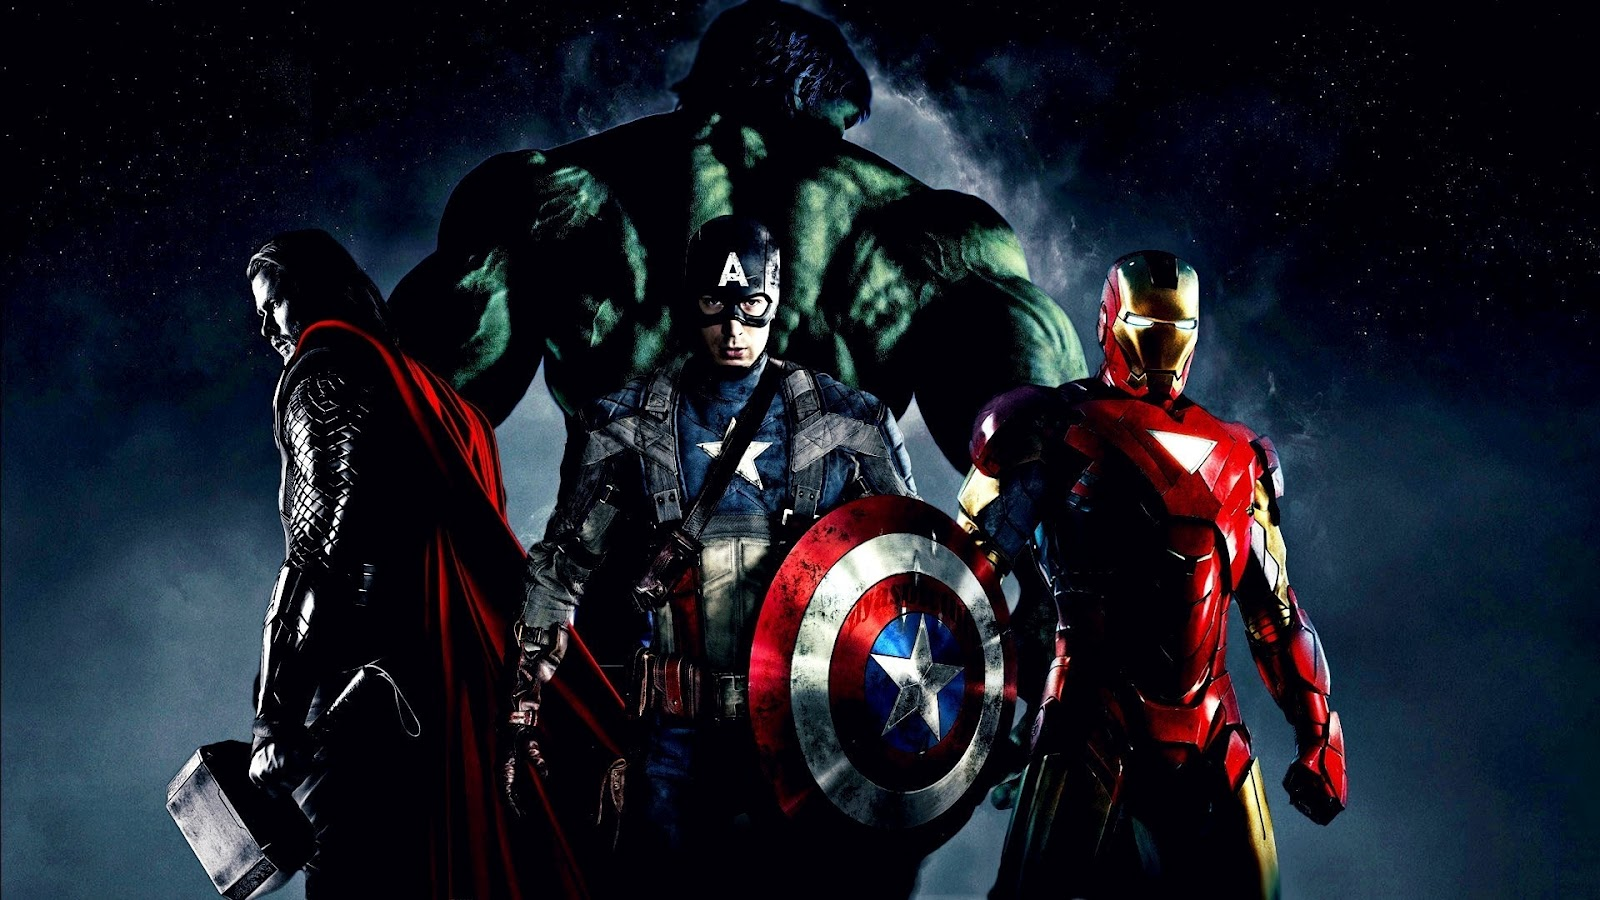 The-Avengers-2012-movie_1920x1080